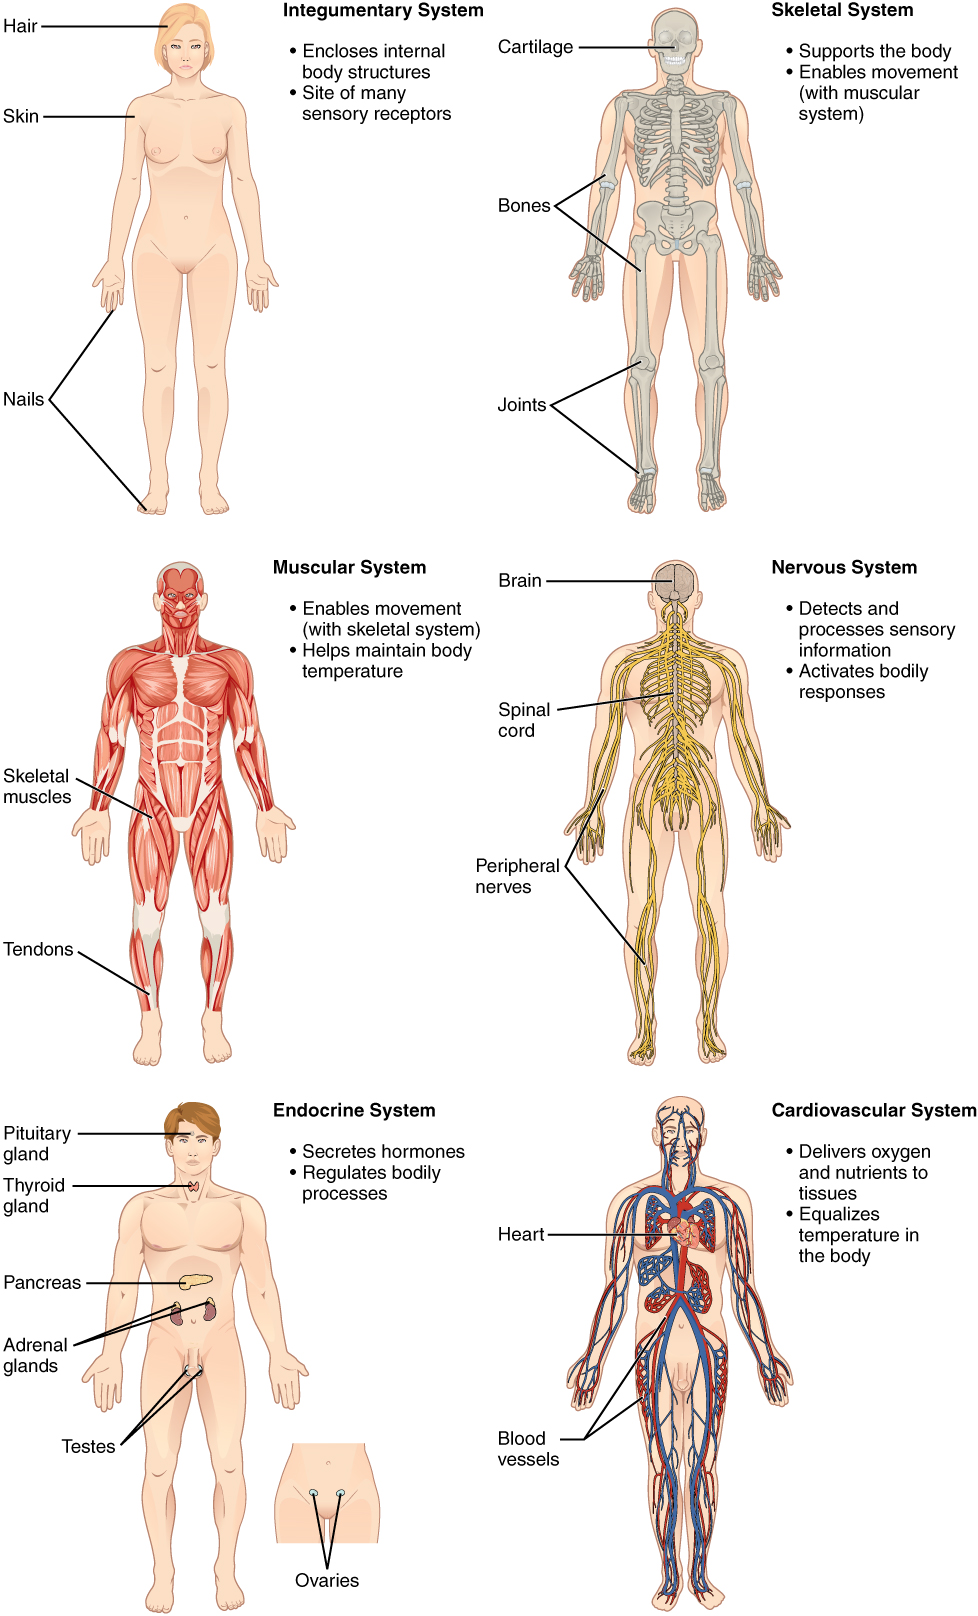 1 2 Structural Organization of the Human Body – Anatomy and